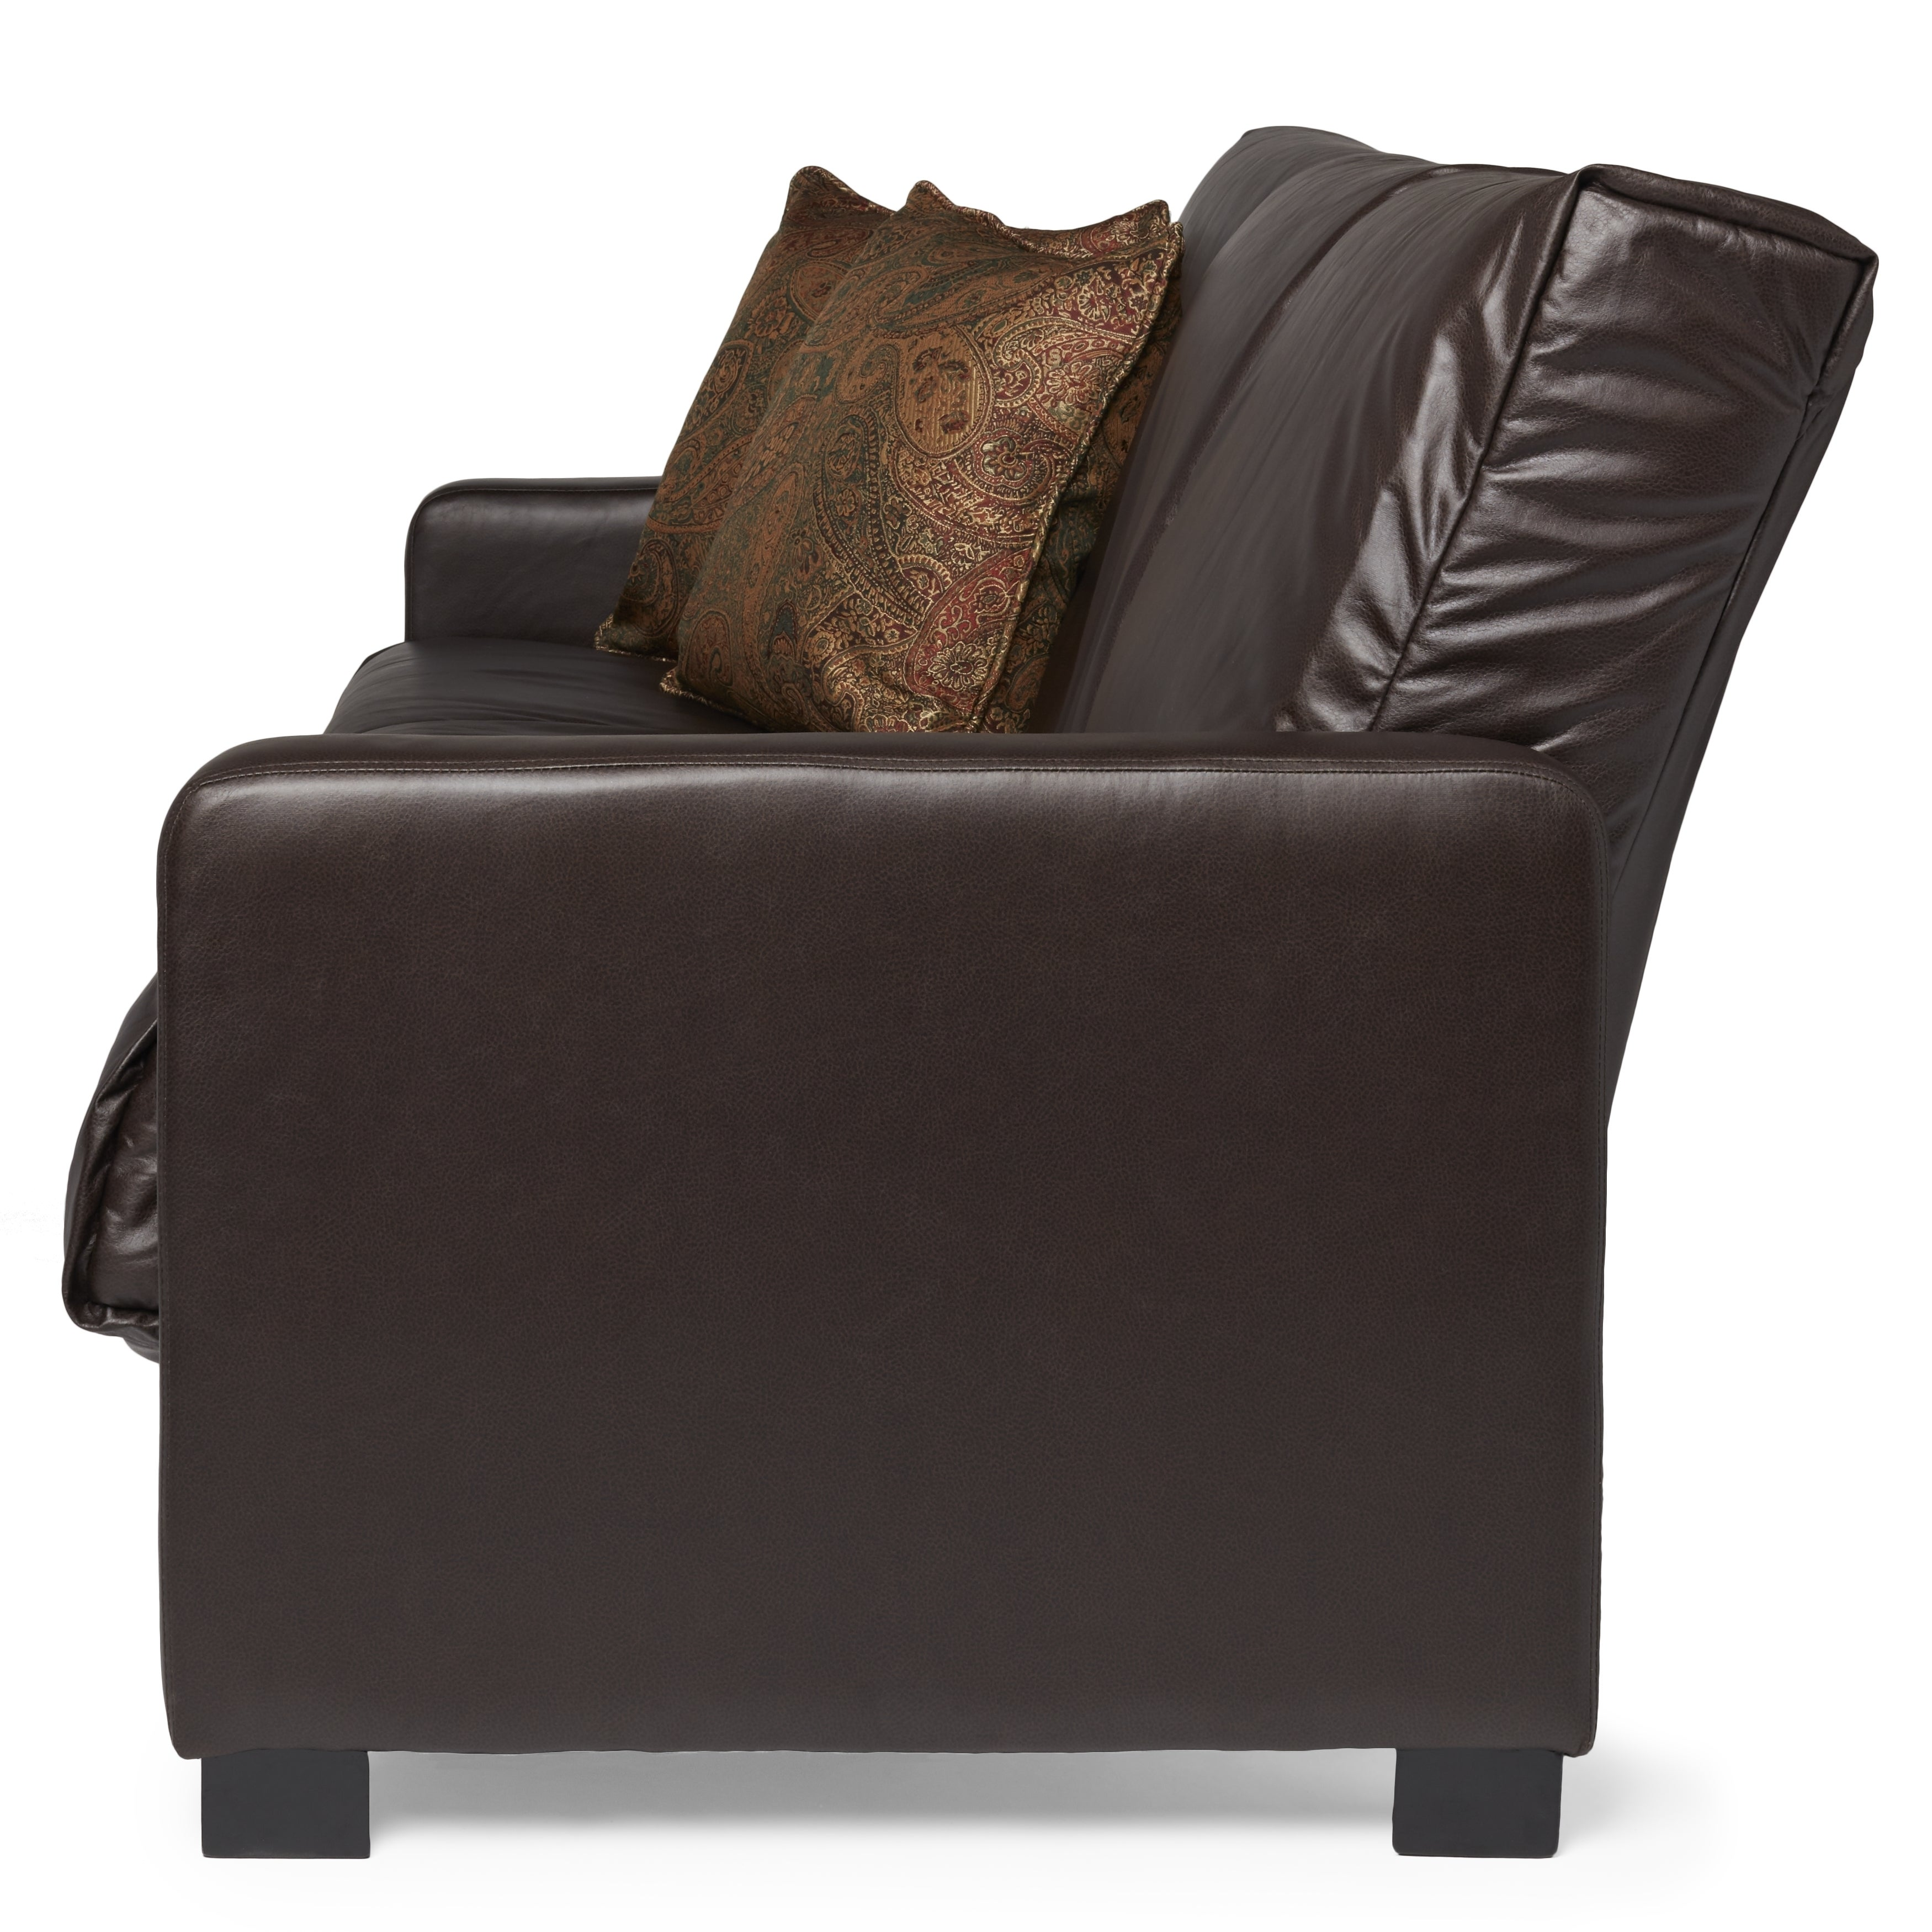 Leather Futon Sleeper in Espresso Free Shipping Today